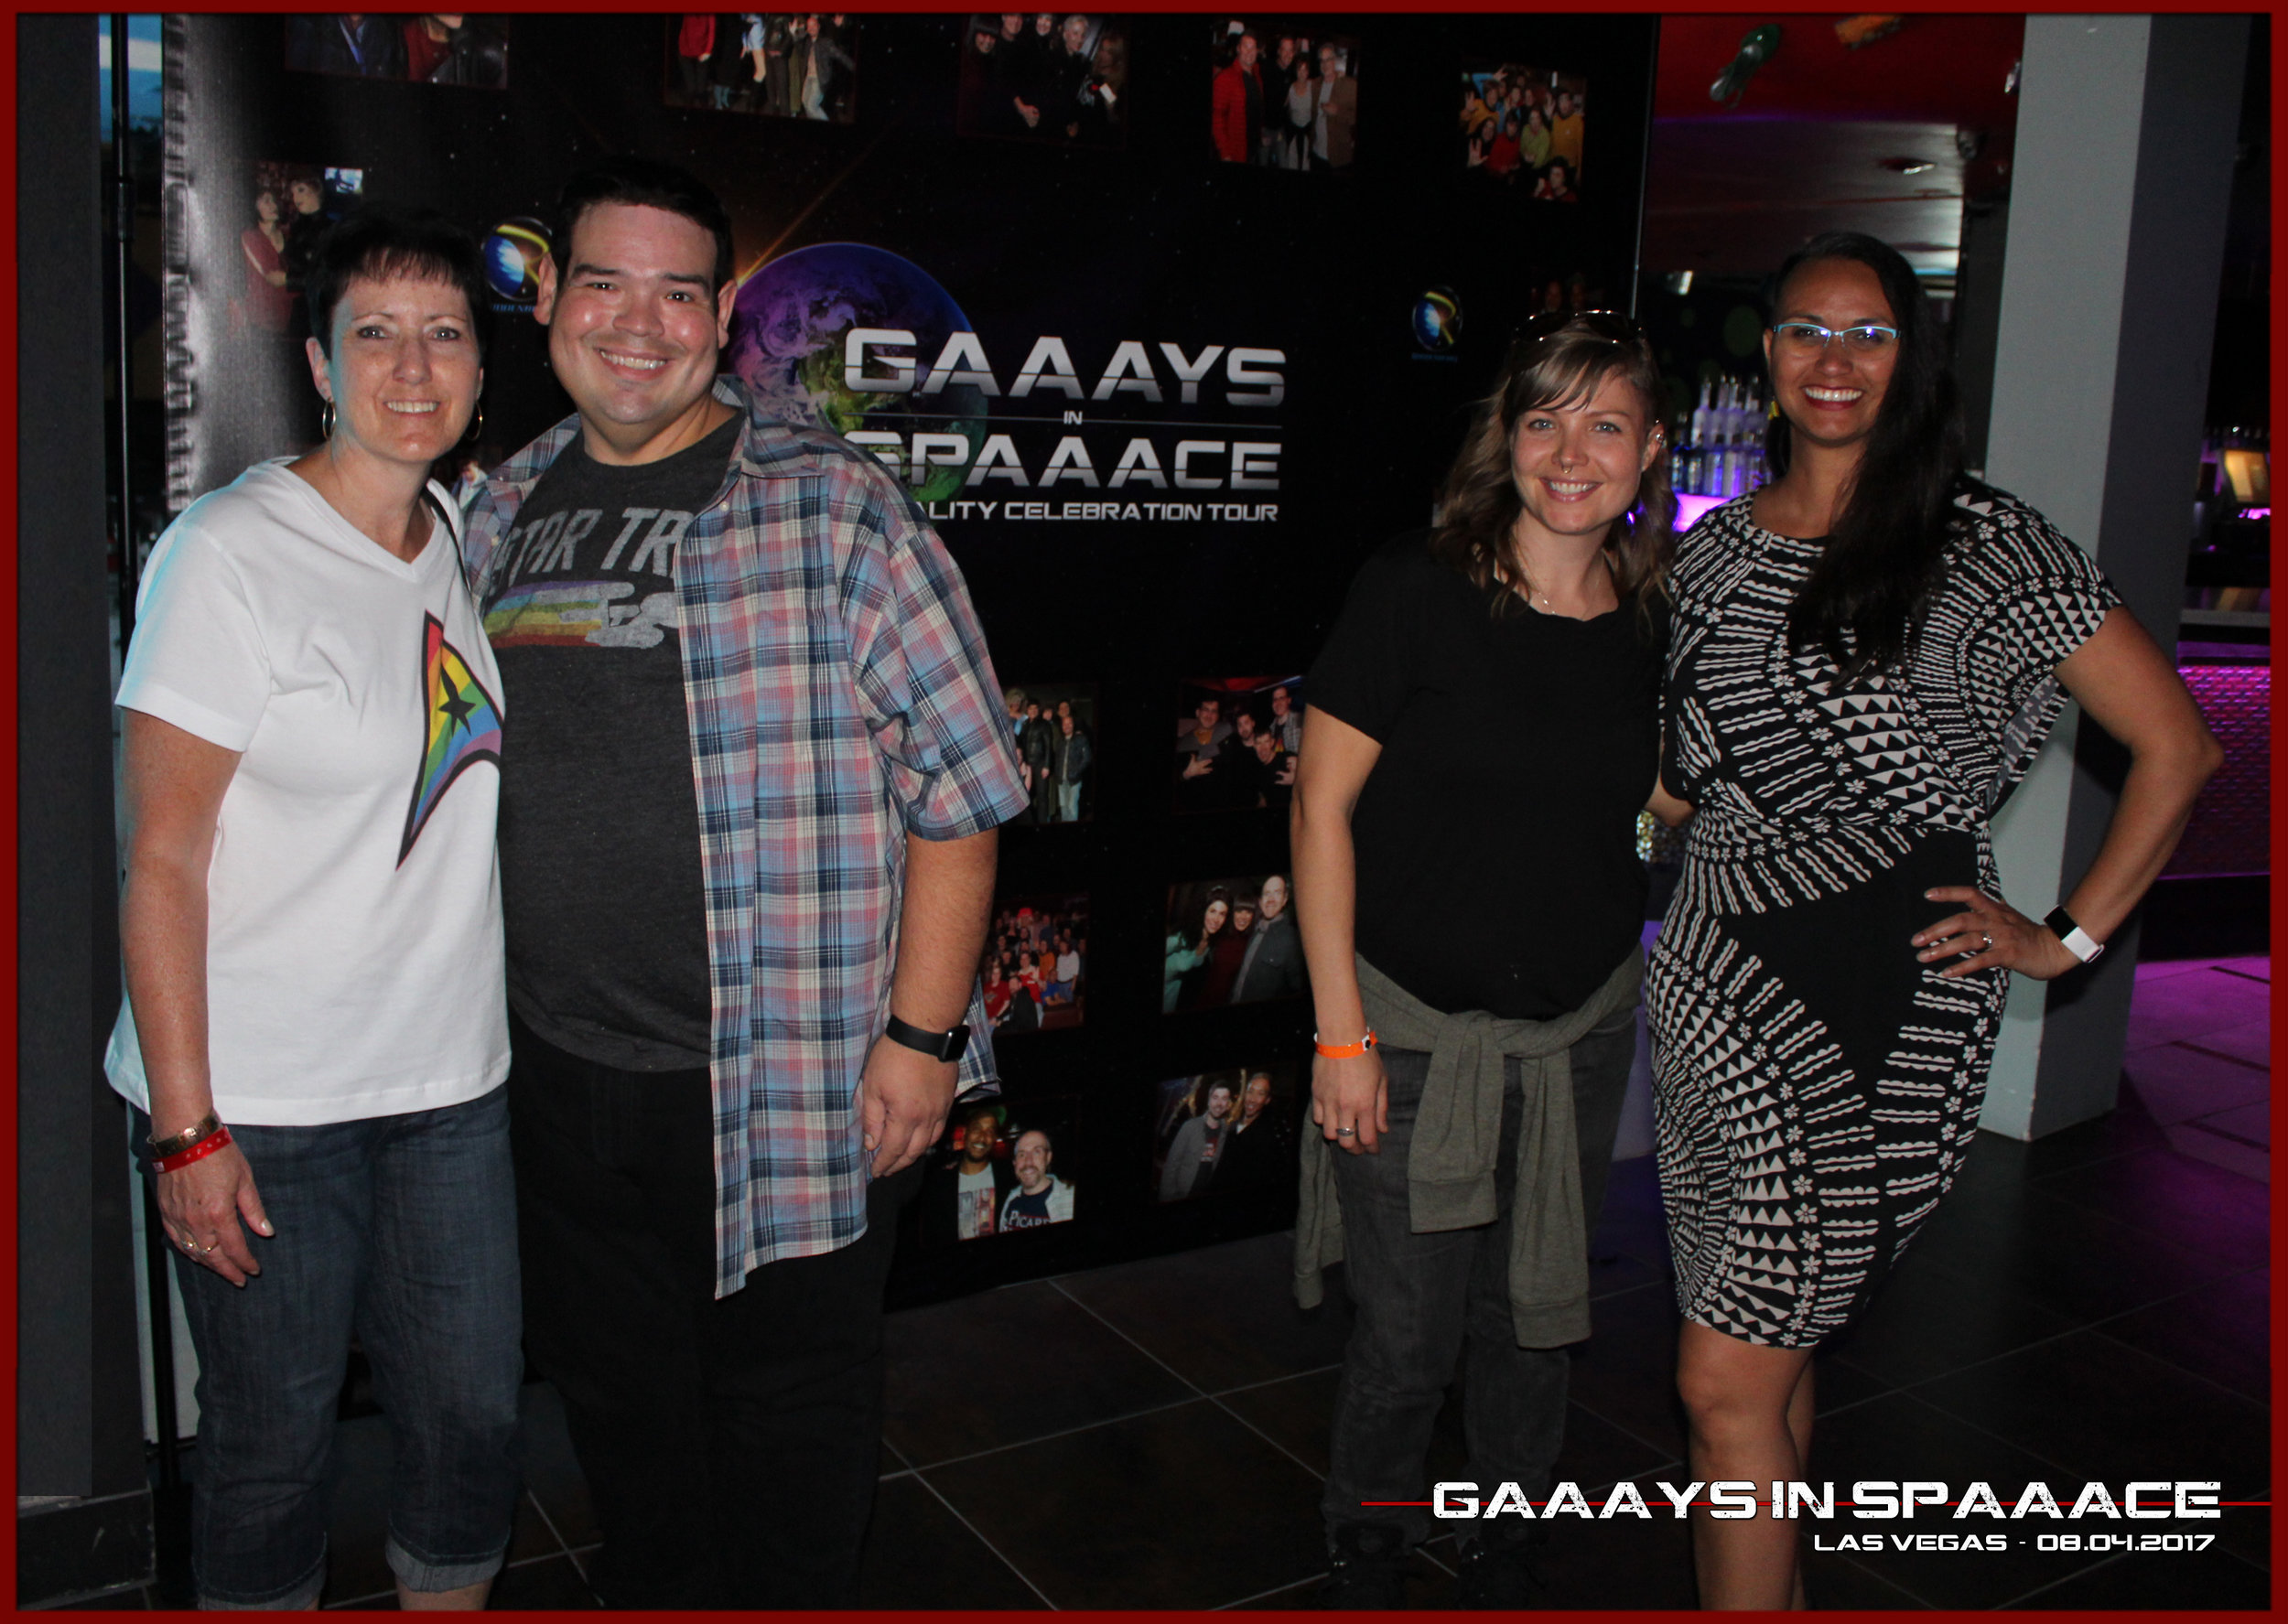 GIS-VEGAS-8-4-17-JesseOquendo-ChristineNetzband-and-2-Fans.jpg